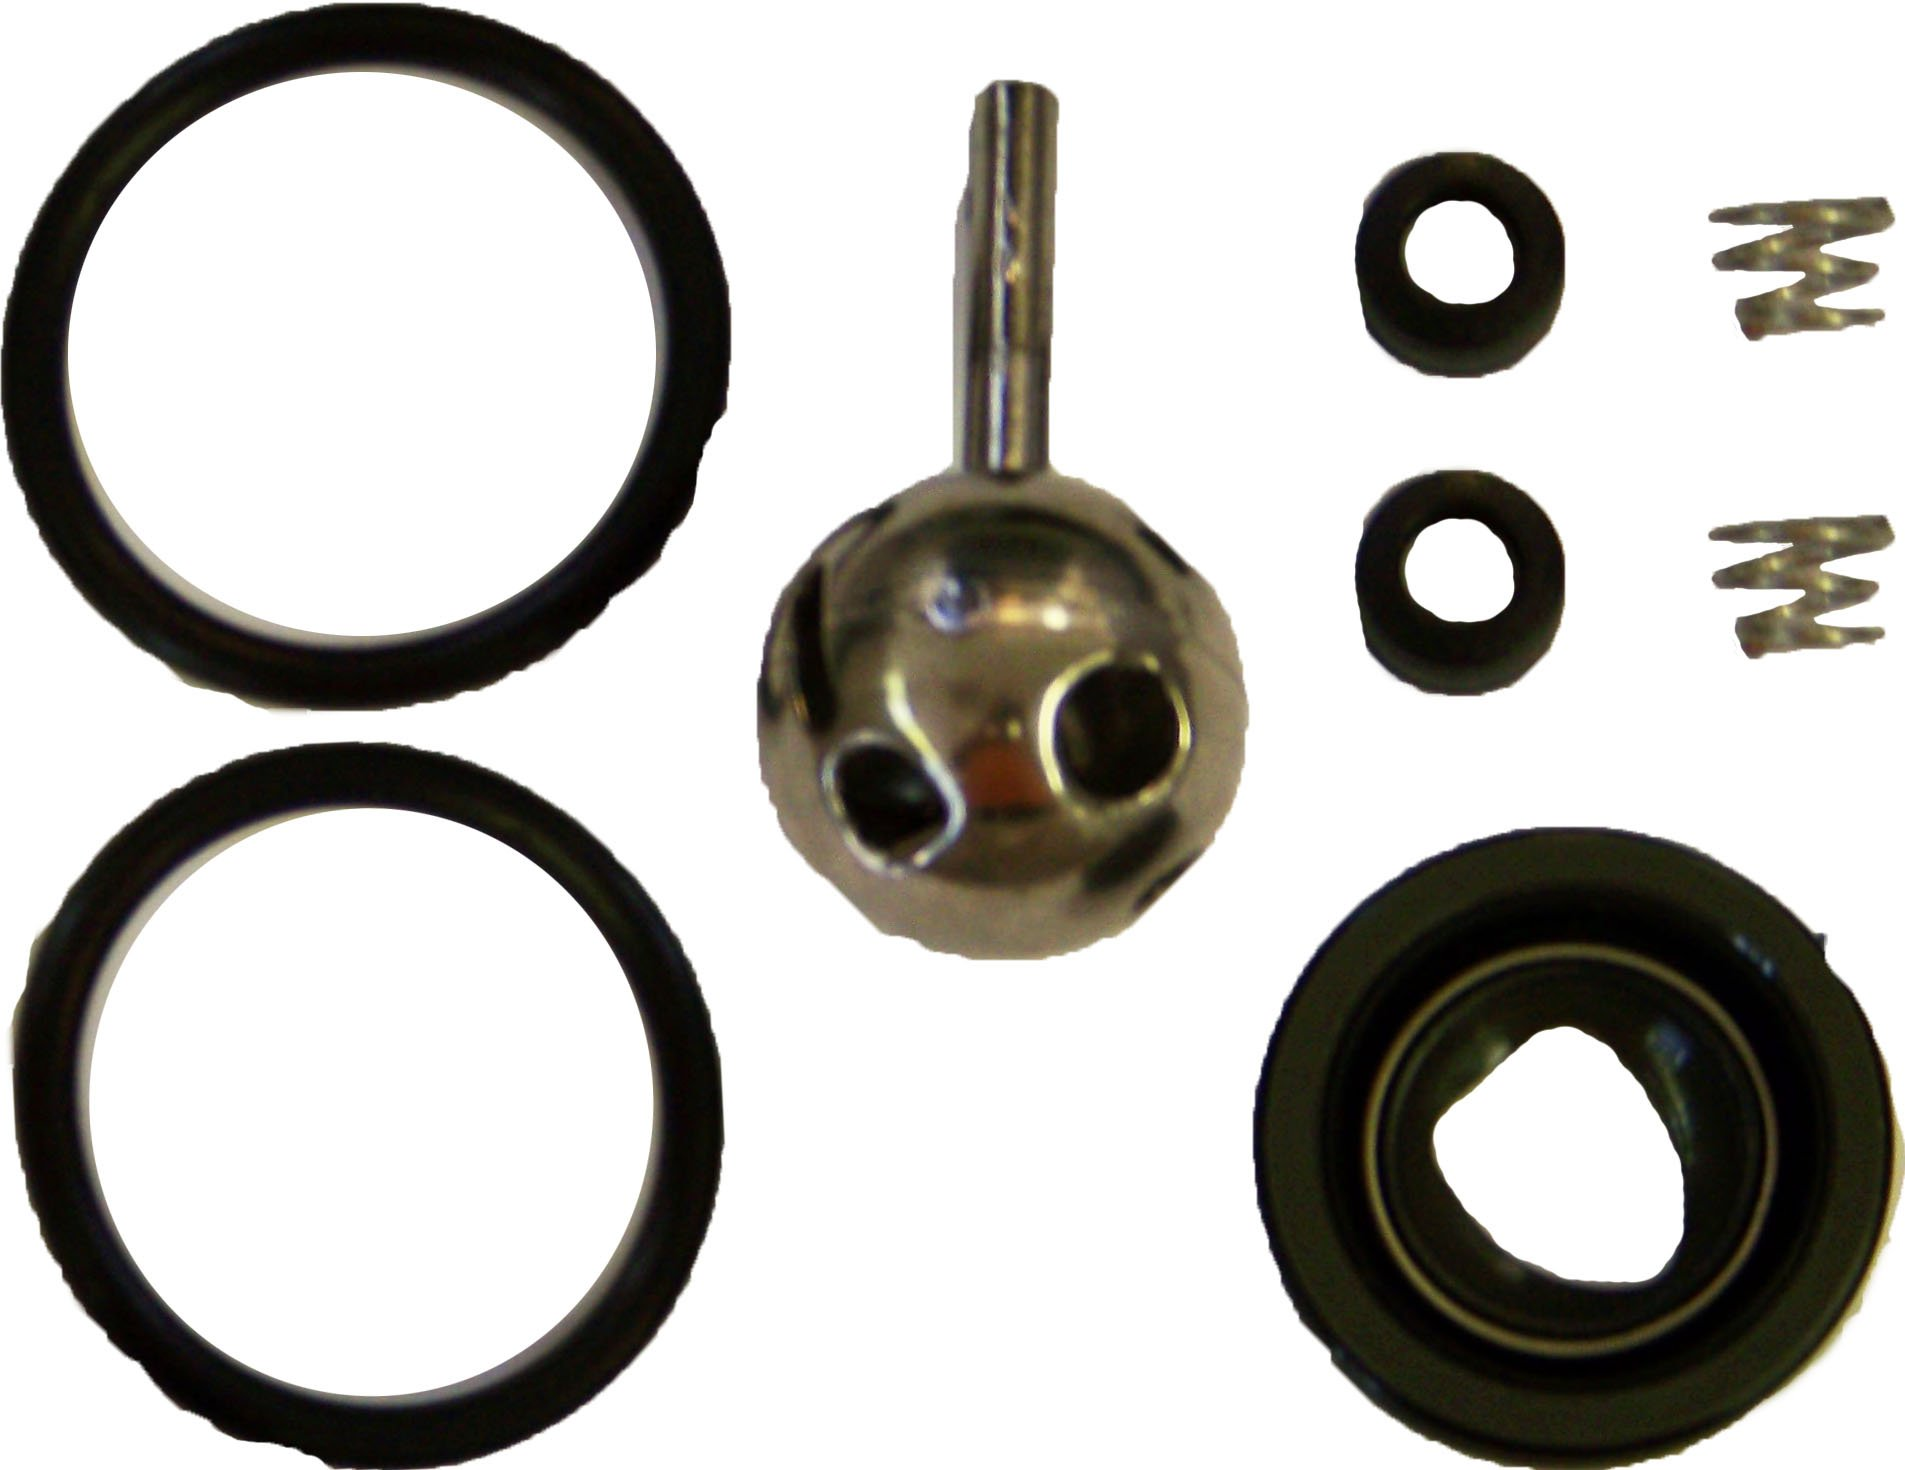 Plumber's Choice 21502 Faucet Lever Repair Kit with Ball